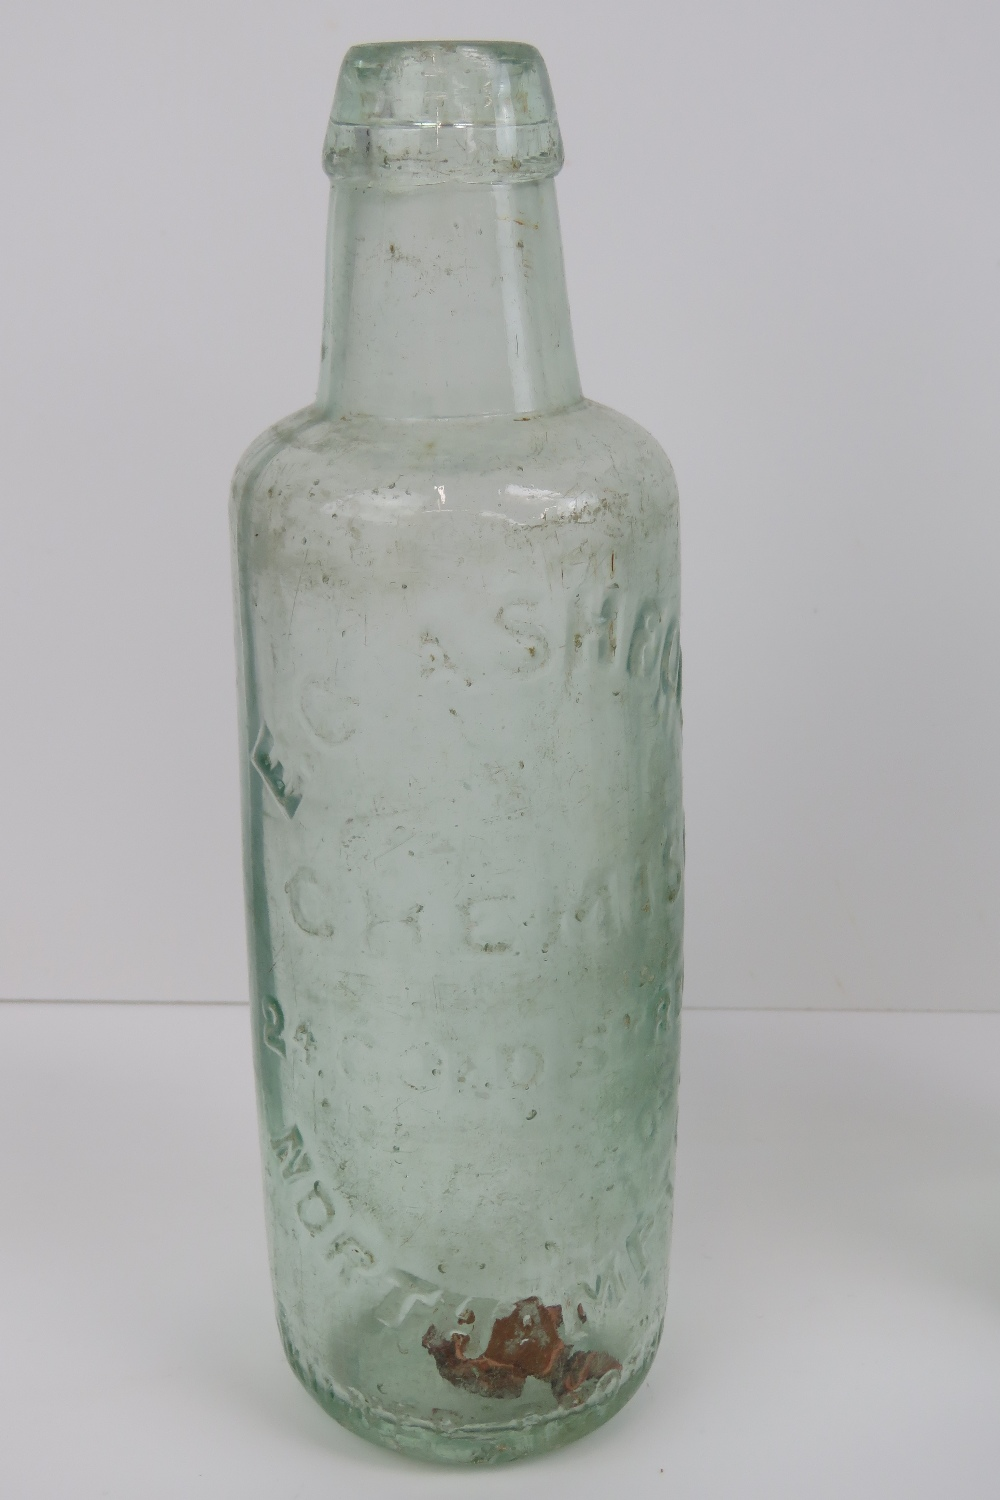 Lot 413 - A selection of vintage glass bottles including; an EC Ashford Chemist 24 Old Street Northampton,